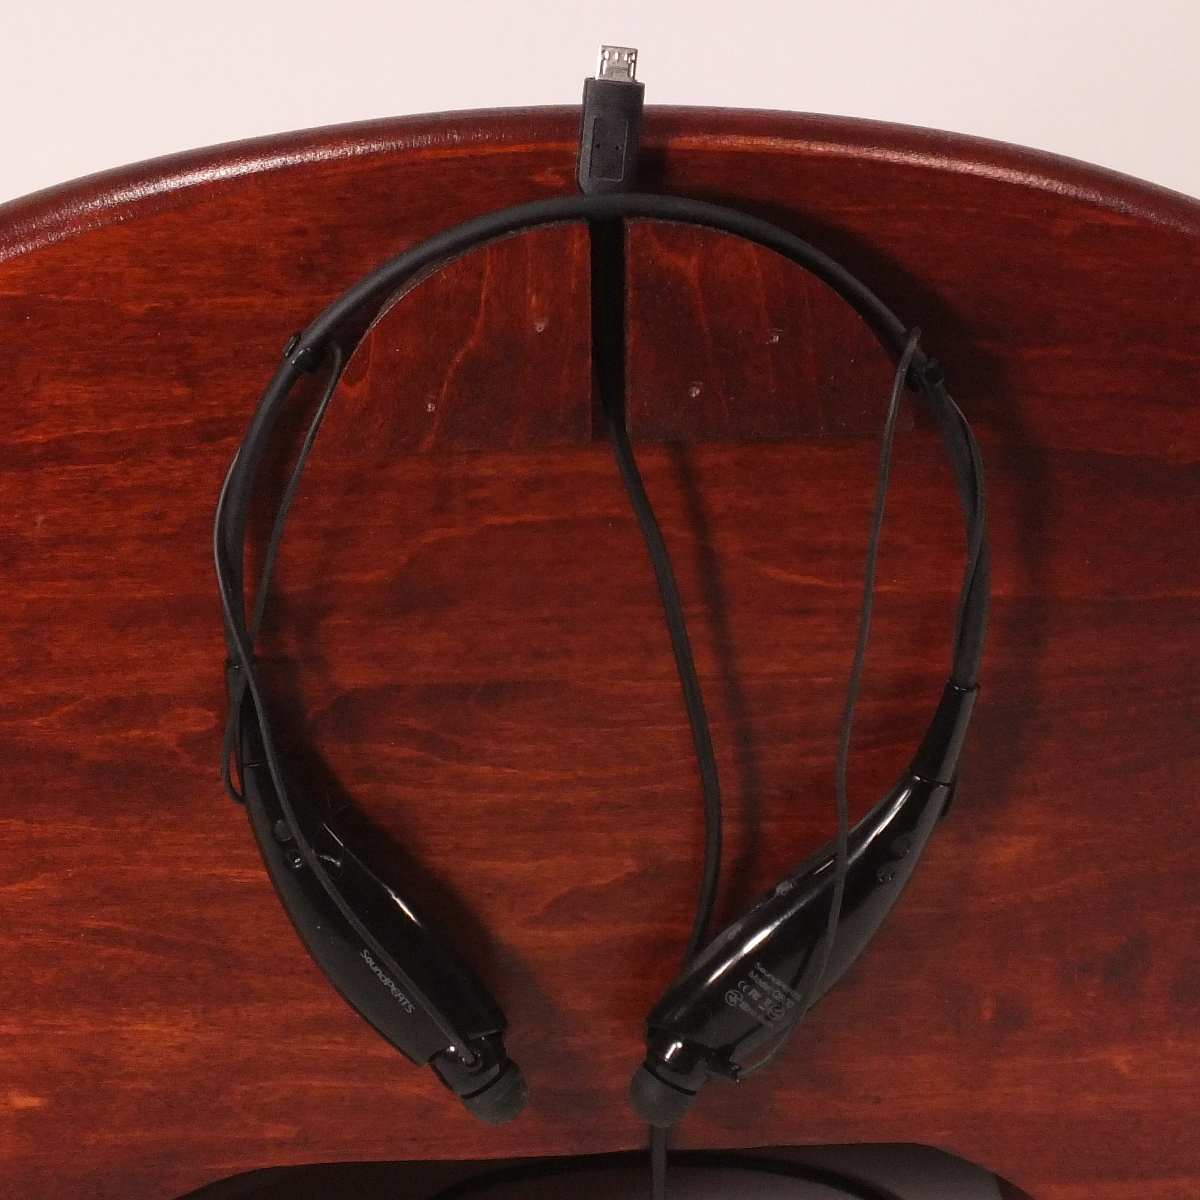 Earbud / Neckband Holder shown here on the back of a Trundle Tech Bed